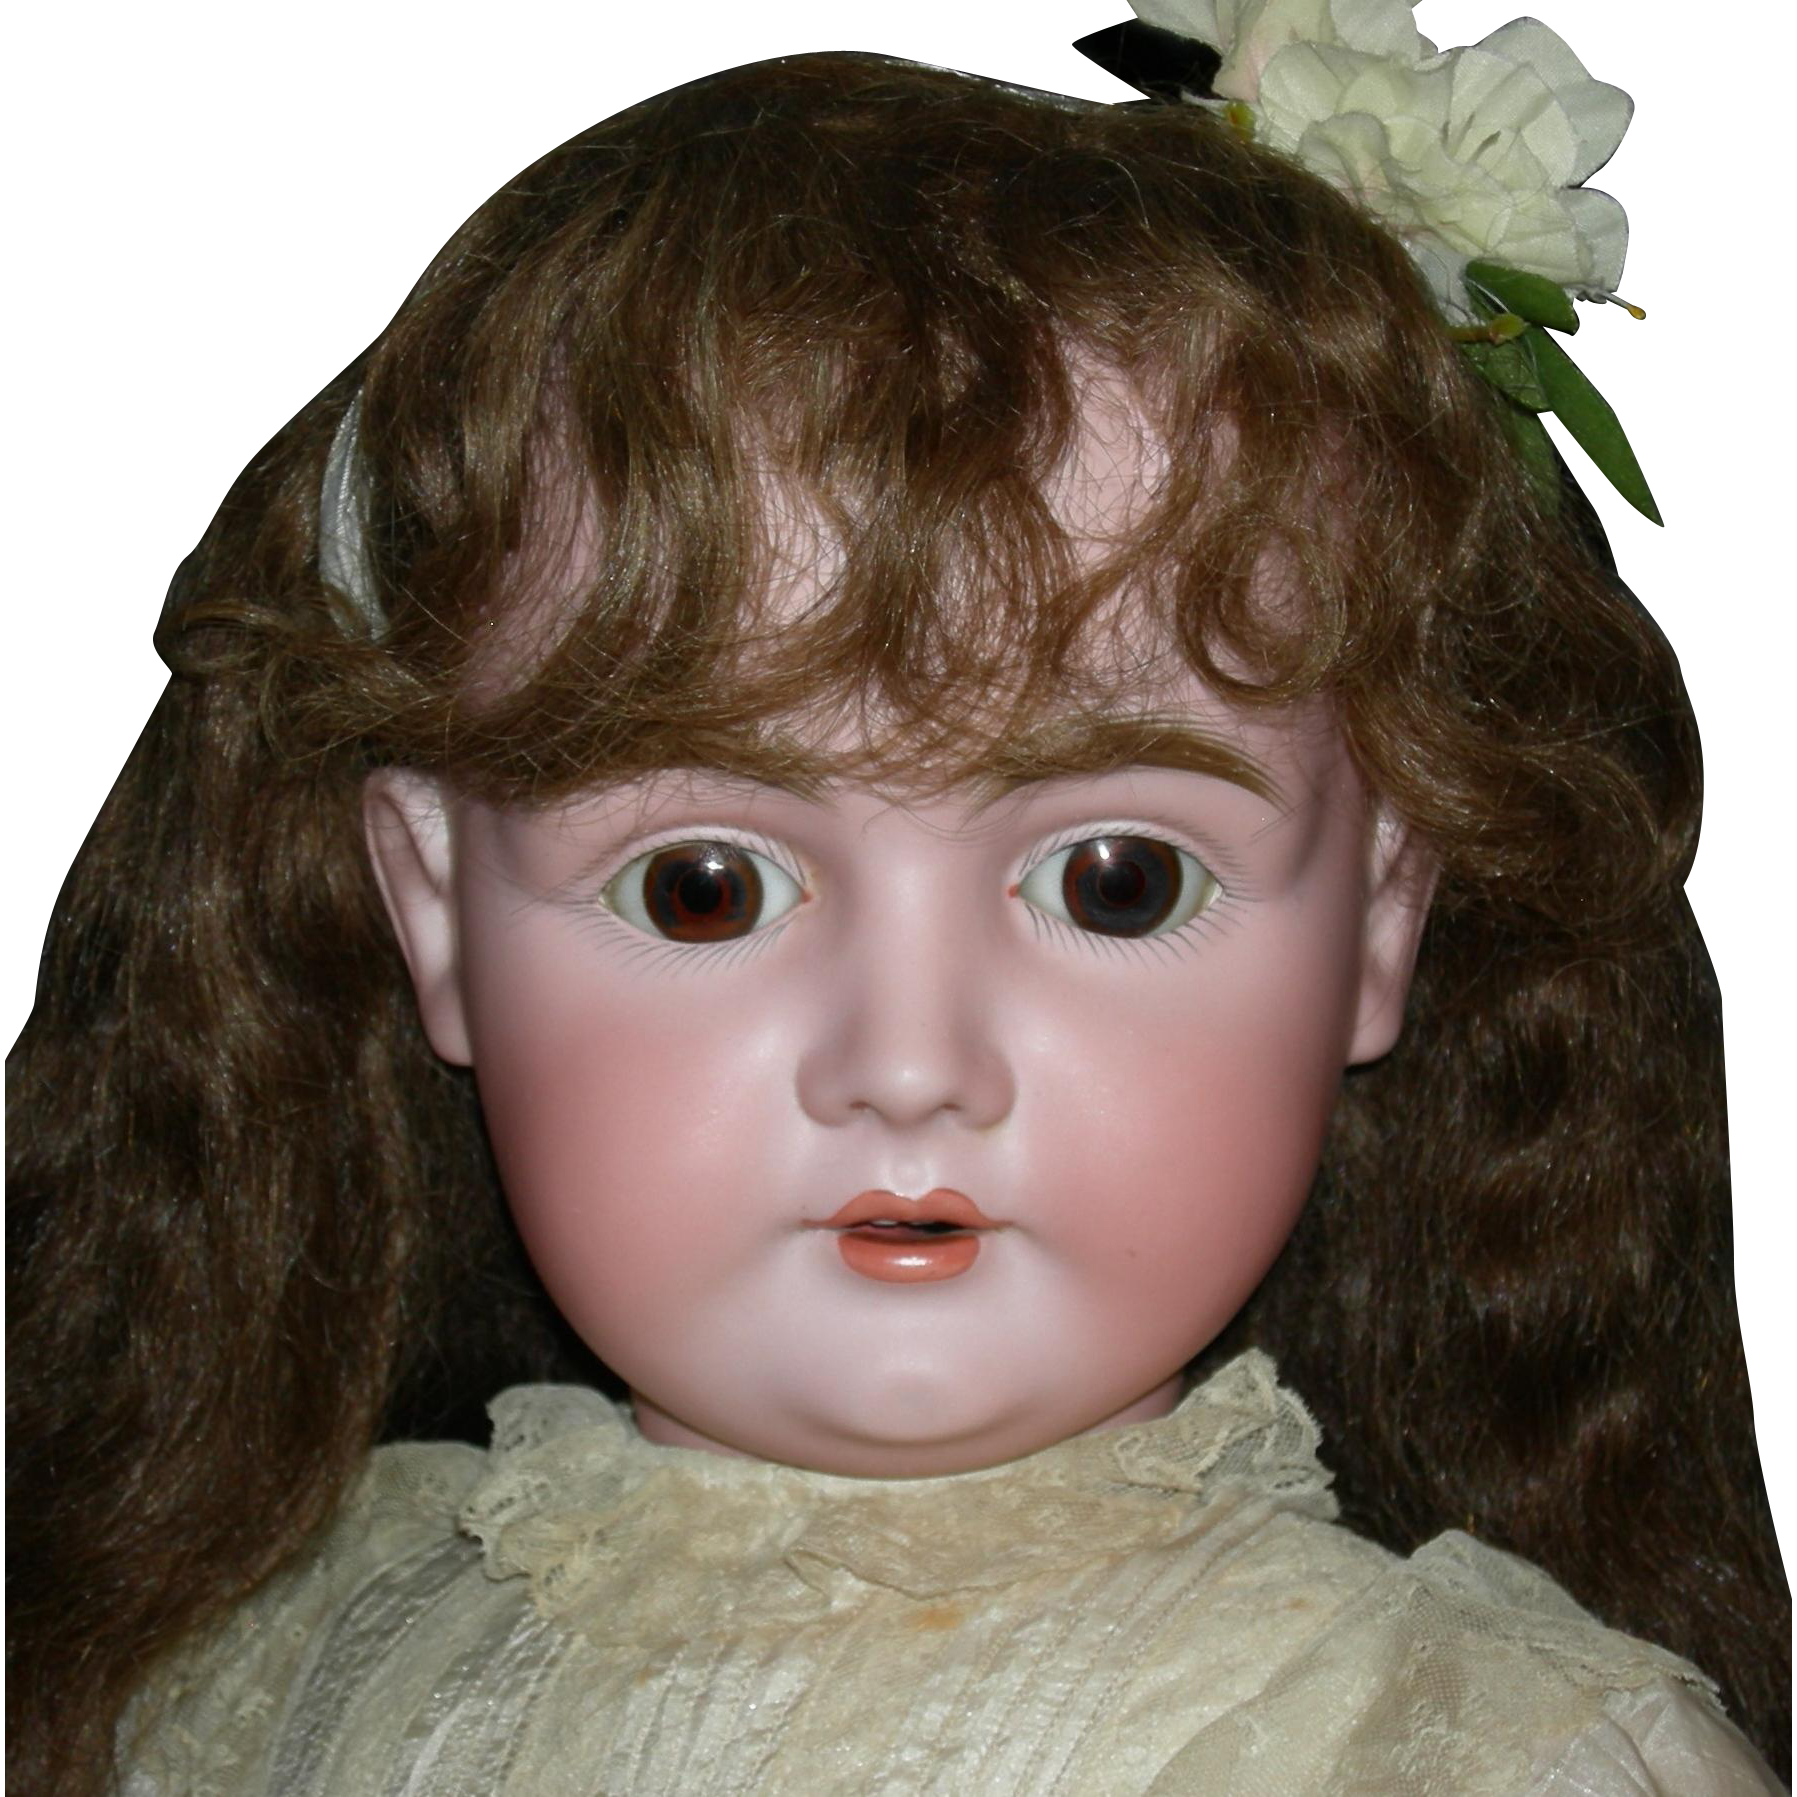 "GIANT 32"" - J.D. KESTNER 164 - Brown Sleep Eyes - Orig Human Hair Wig - Orig Plaster Pate - Orig Finish on Marked Body!!"